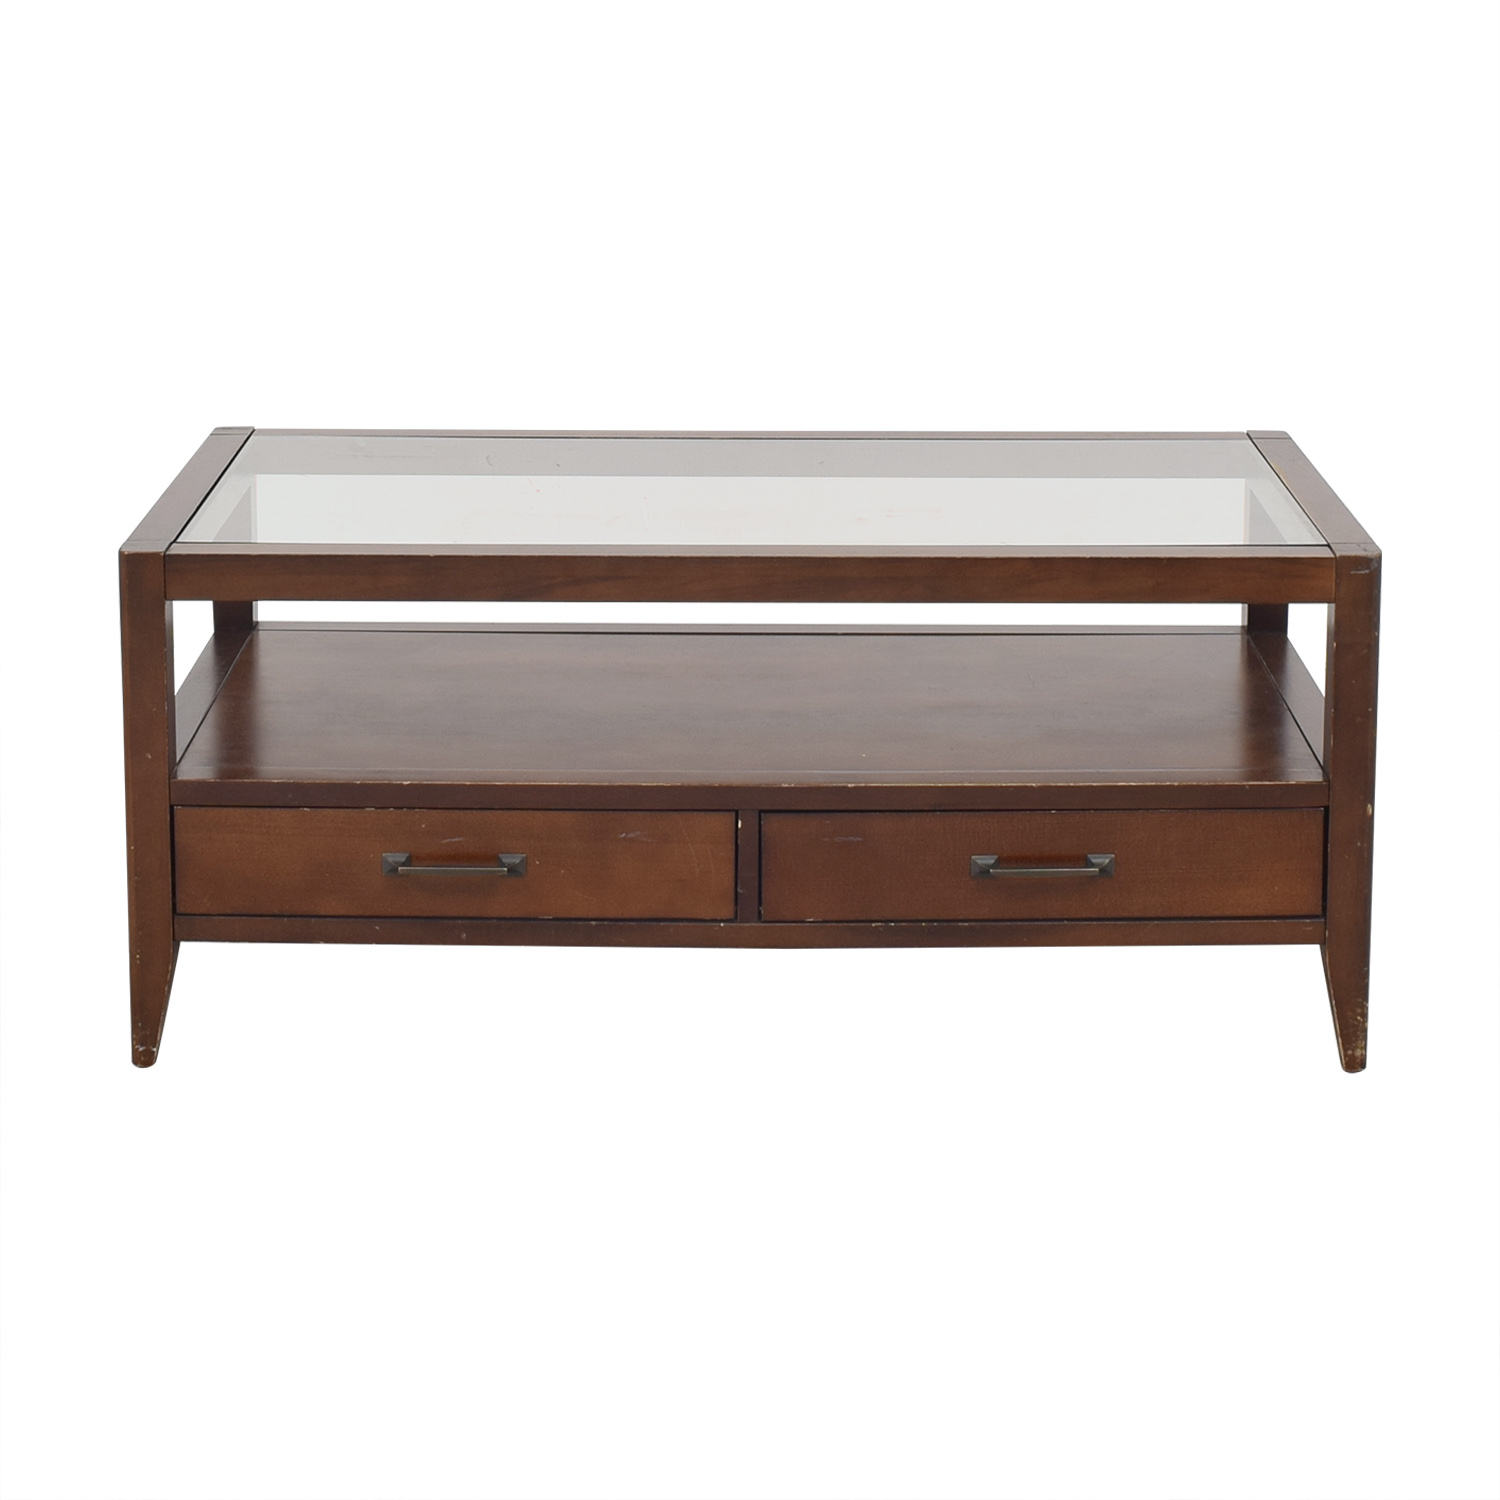 Crate & Barrel Crate & Barrel Two Drawer Coffee Table pa